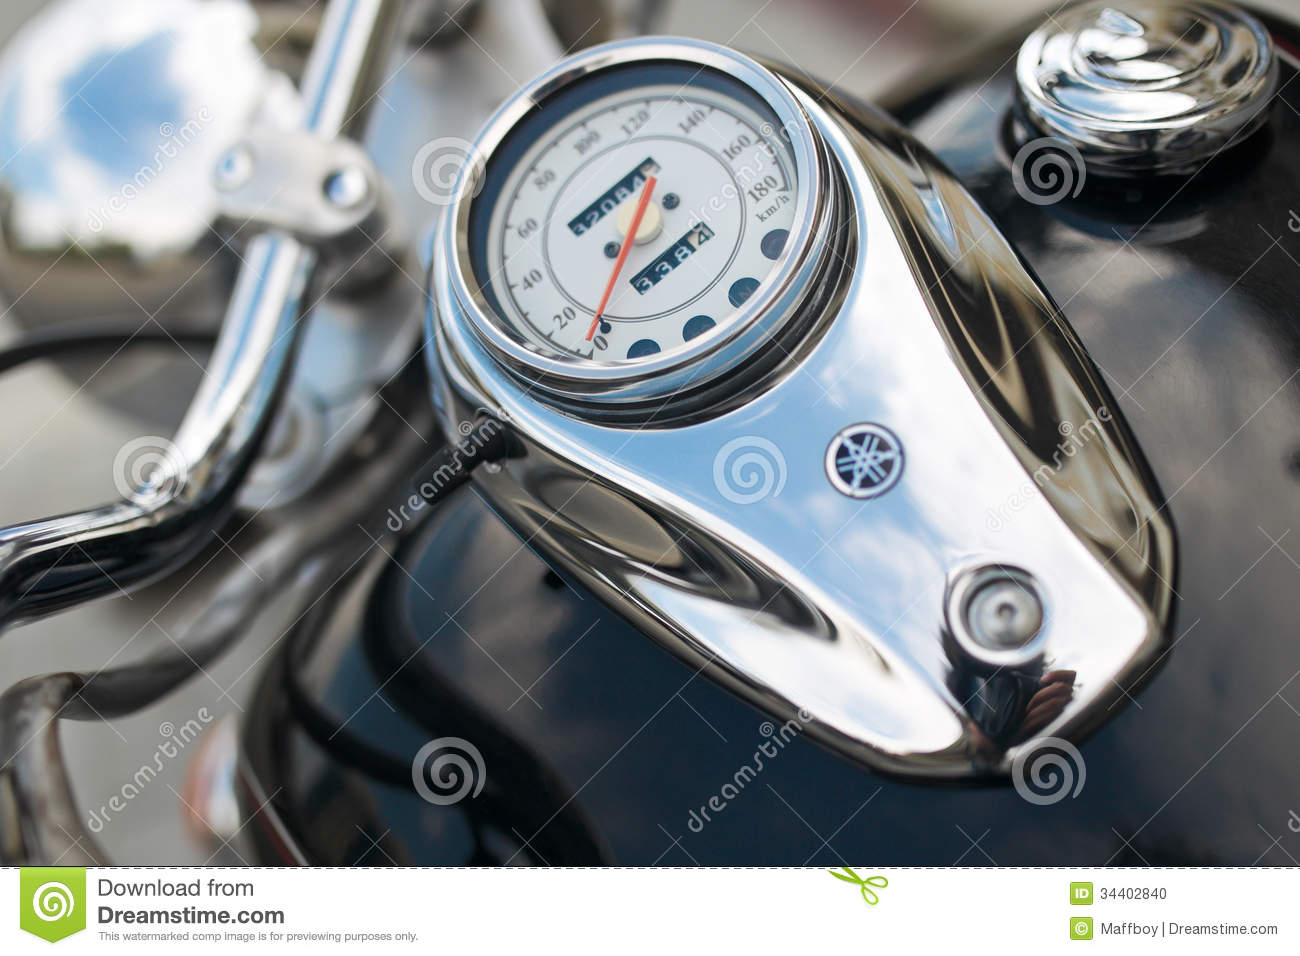 motorcycle speedometer hook up How to wire a motorcycle tachometer by justin wash how to look up the vin number for a motorcycle from the '70s how to attach a guardian bell to your motorcycle.